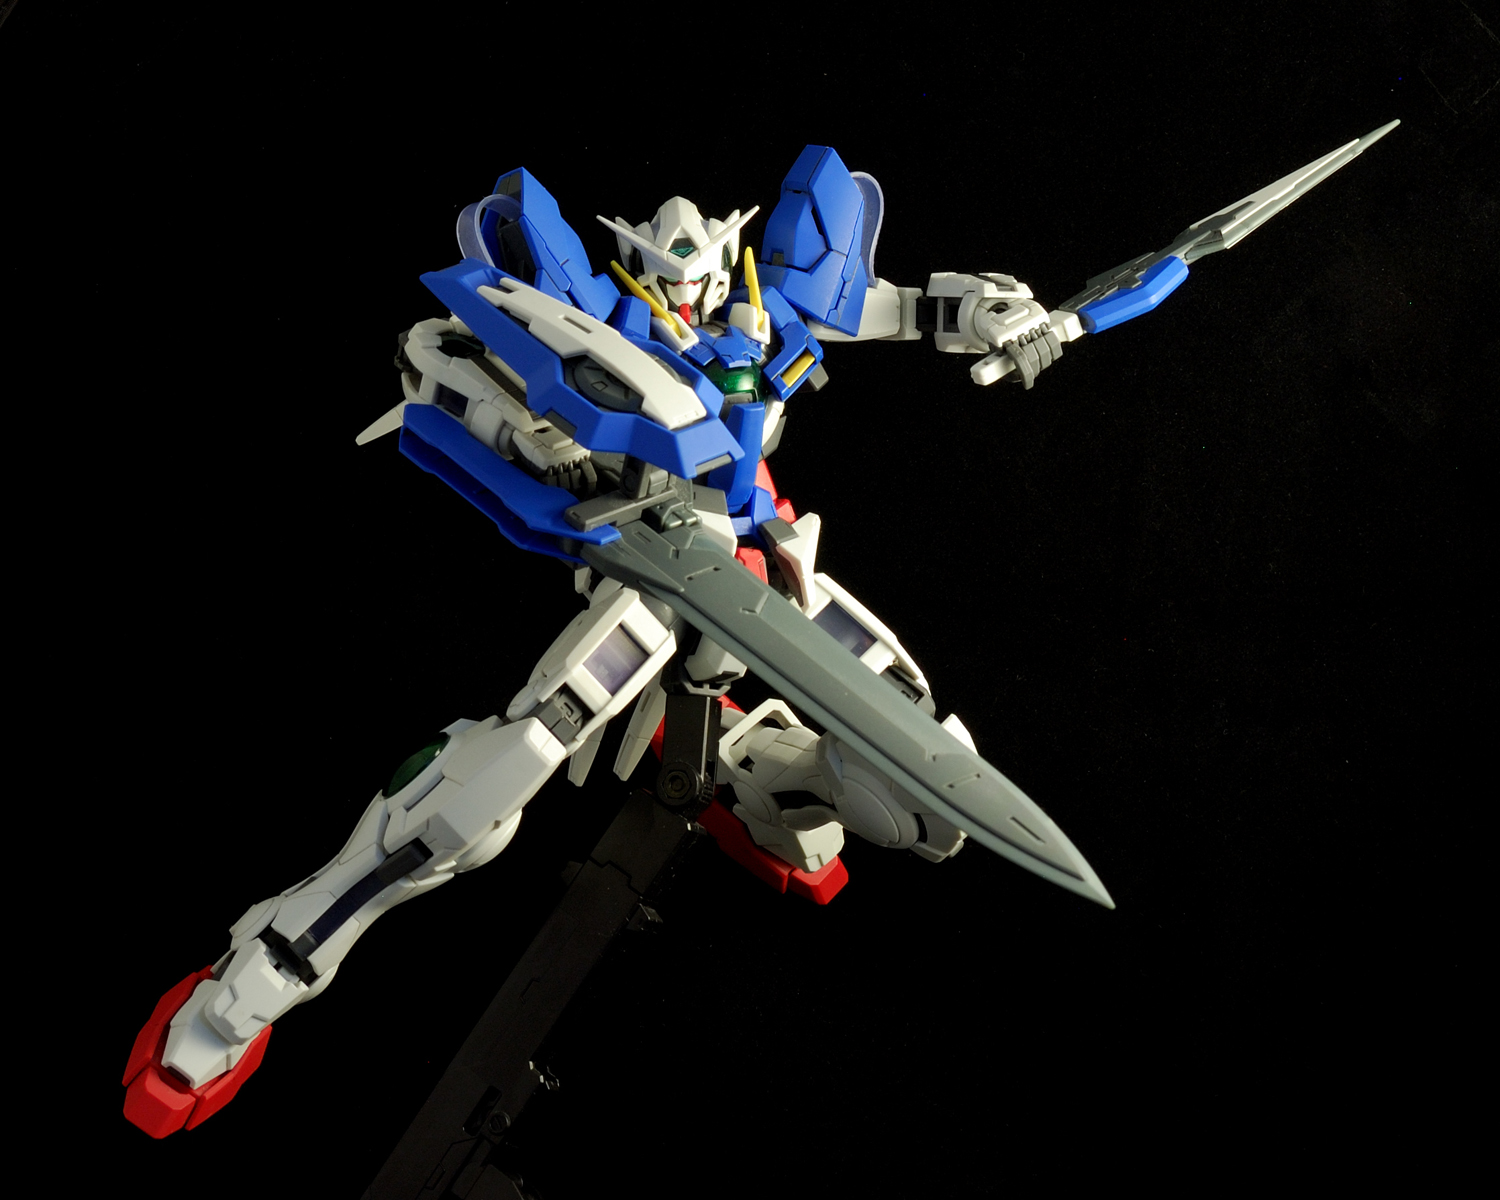 hobby t with Review Mg Gundam Exia on 893 further 35 37 38 together with Watch in addition Review Mg Gundam Exia together with Watch.